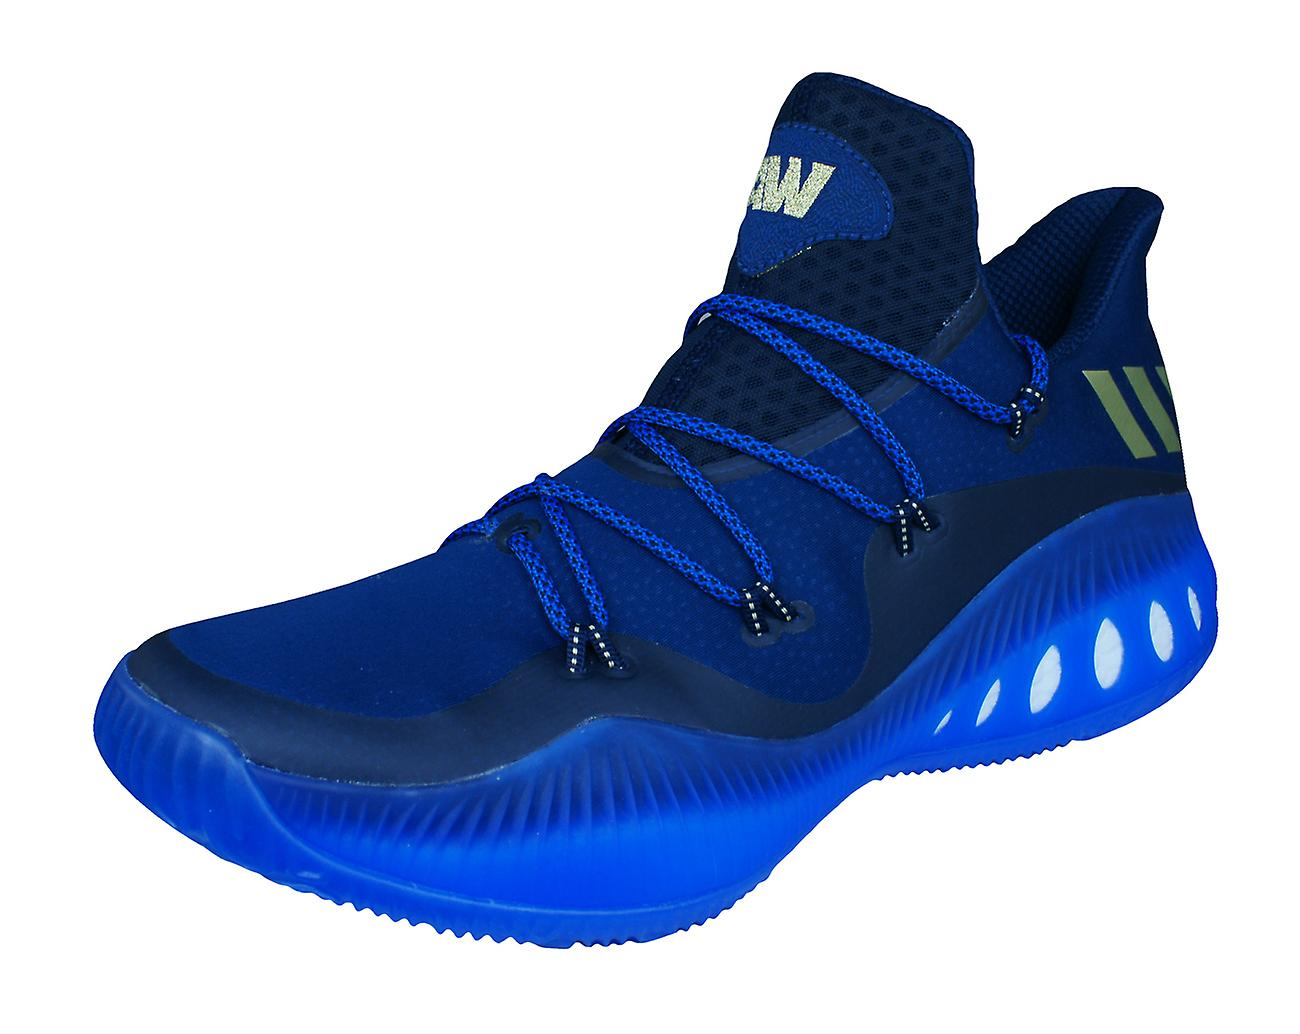 adidas Crazy Explosive Low Mens Basketball Trainers Shoes